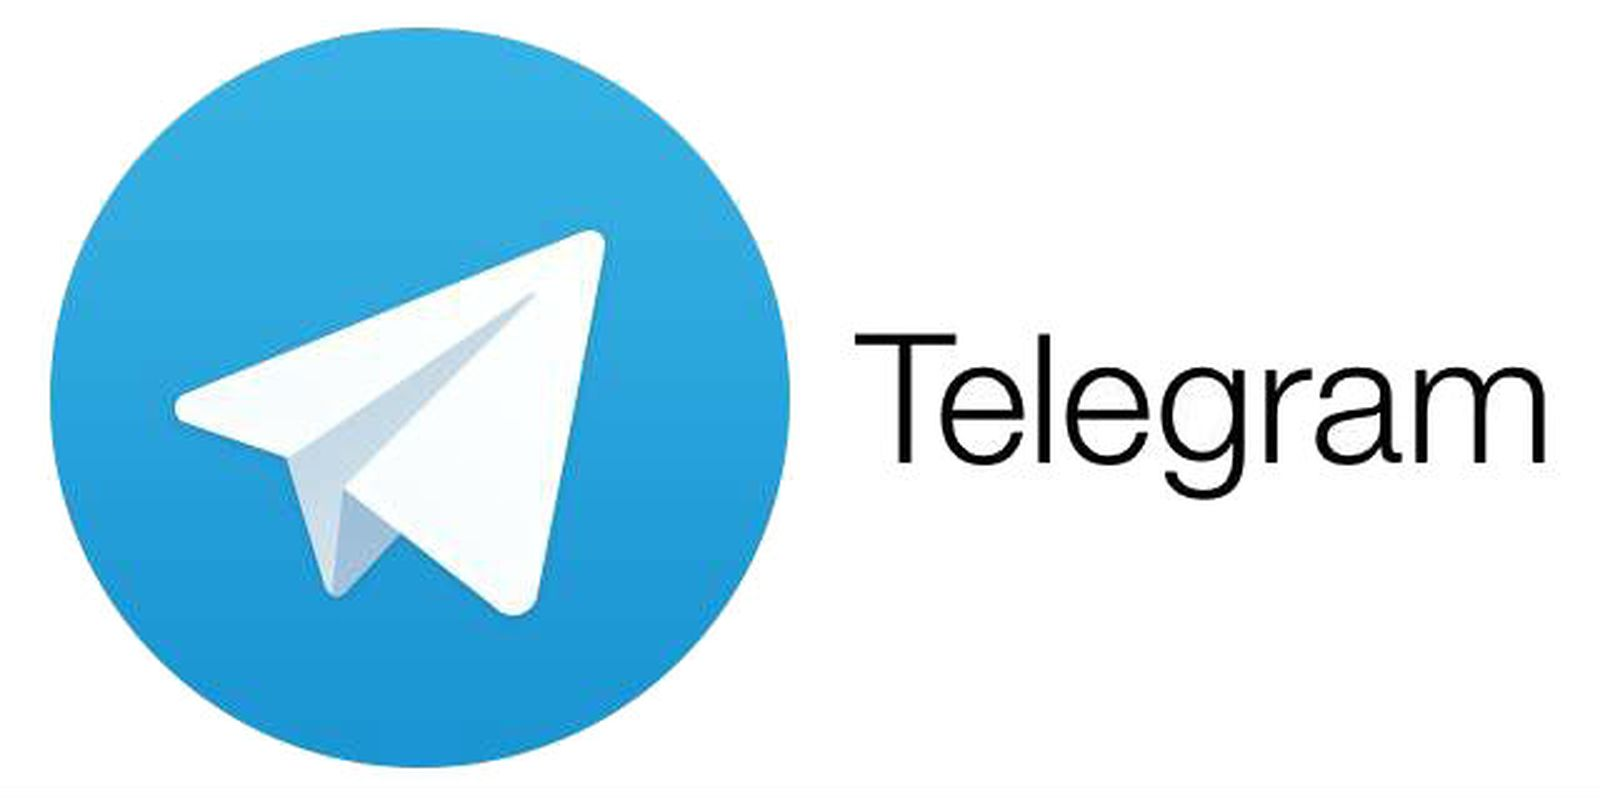 How to Import WhatsApp Chats into Telegram on iPhone - MacRumors